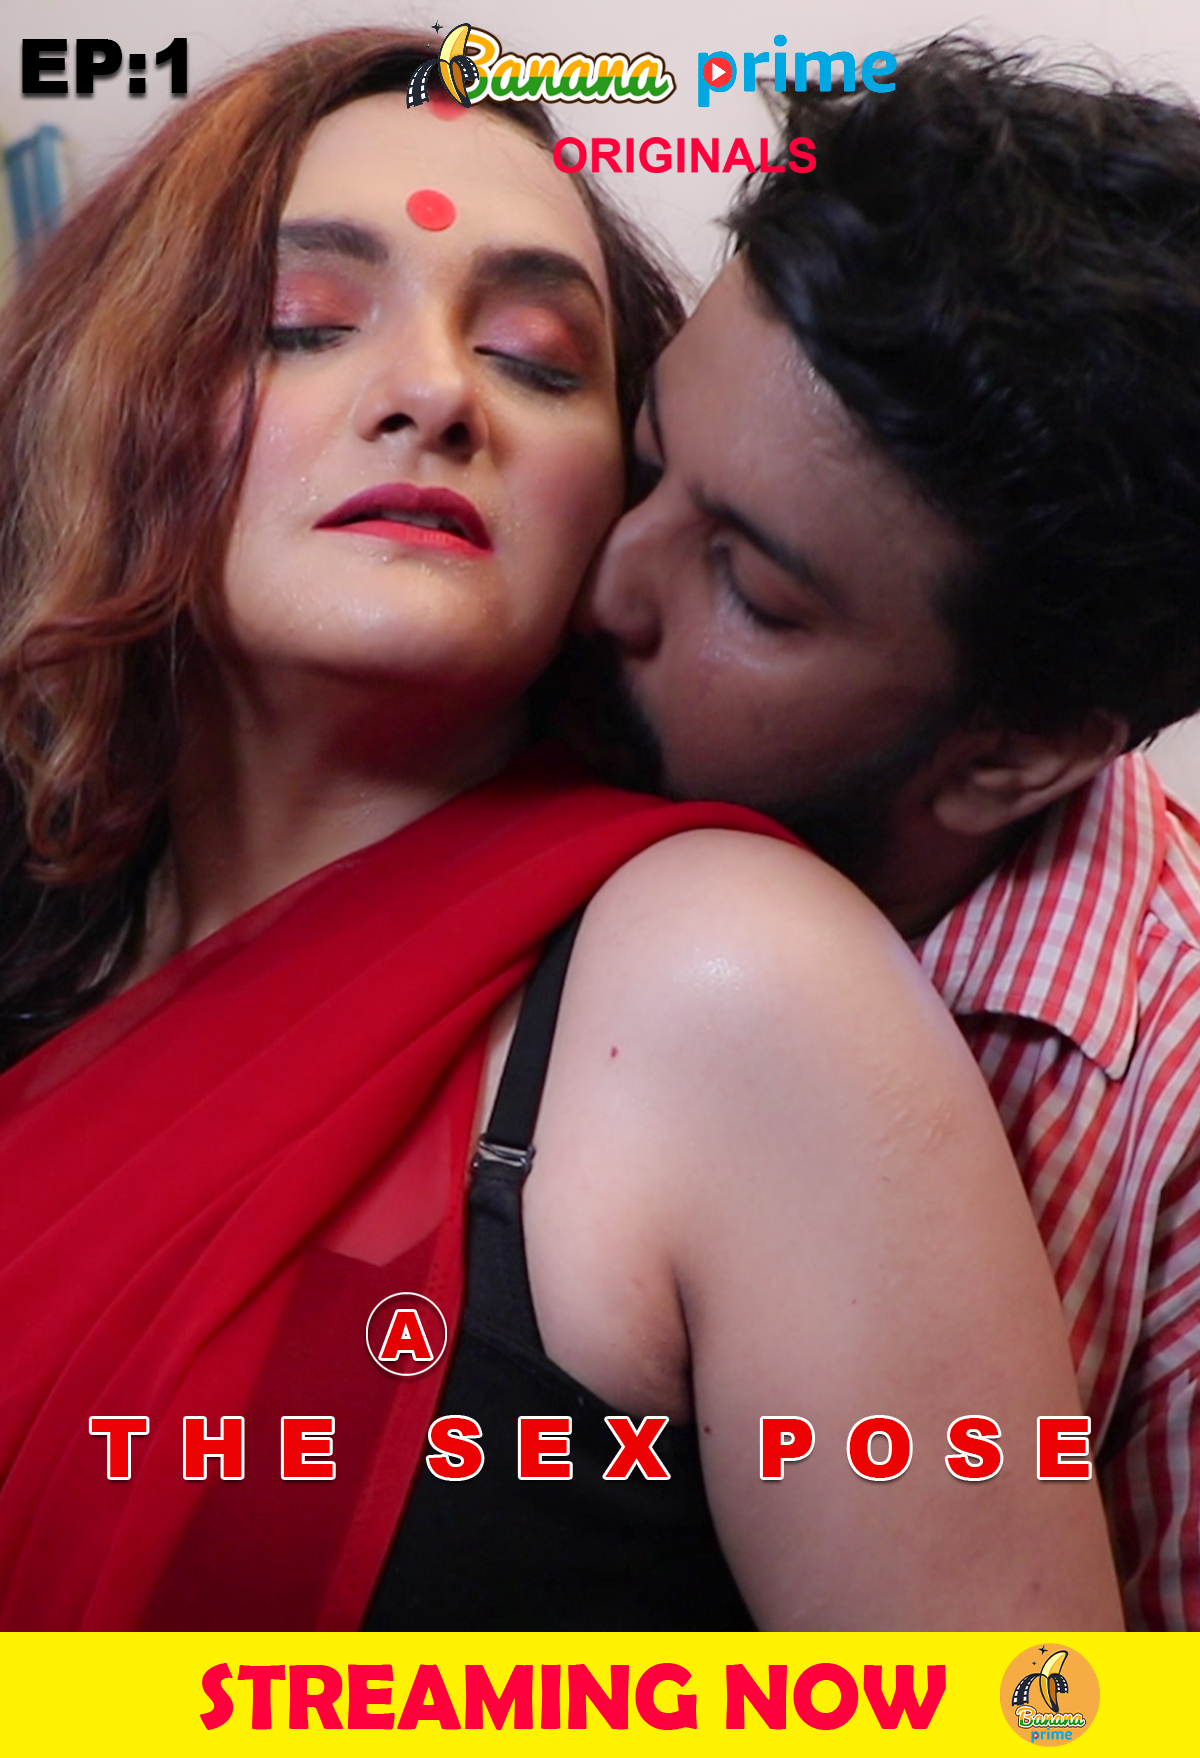 18+ The Sex pose (2020) S01E01 Bengali Bananaprime Web Series 720p HDRip 100MB x264 AAC